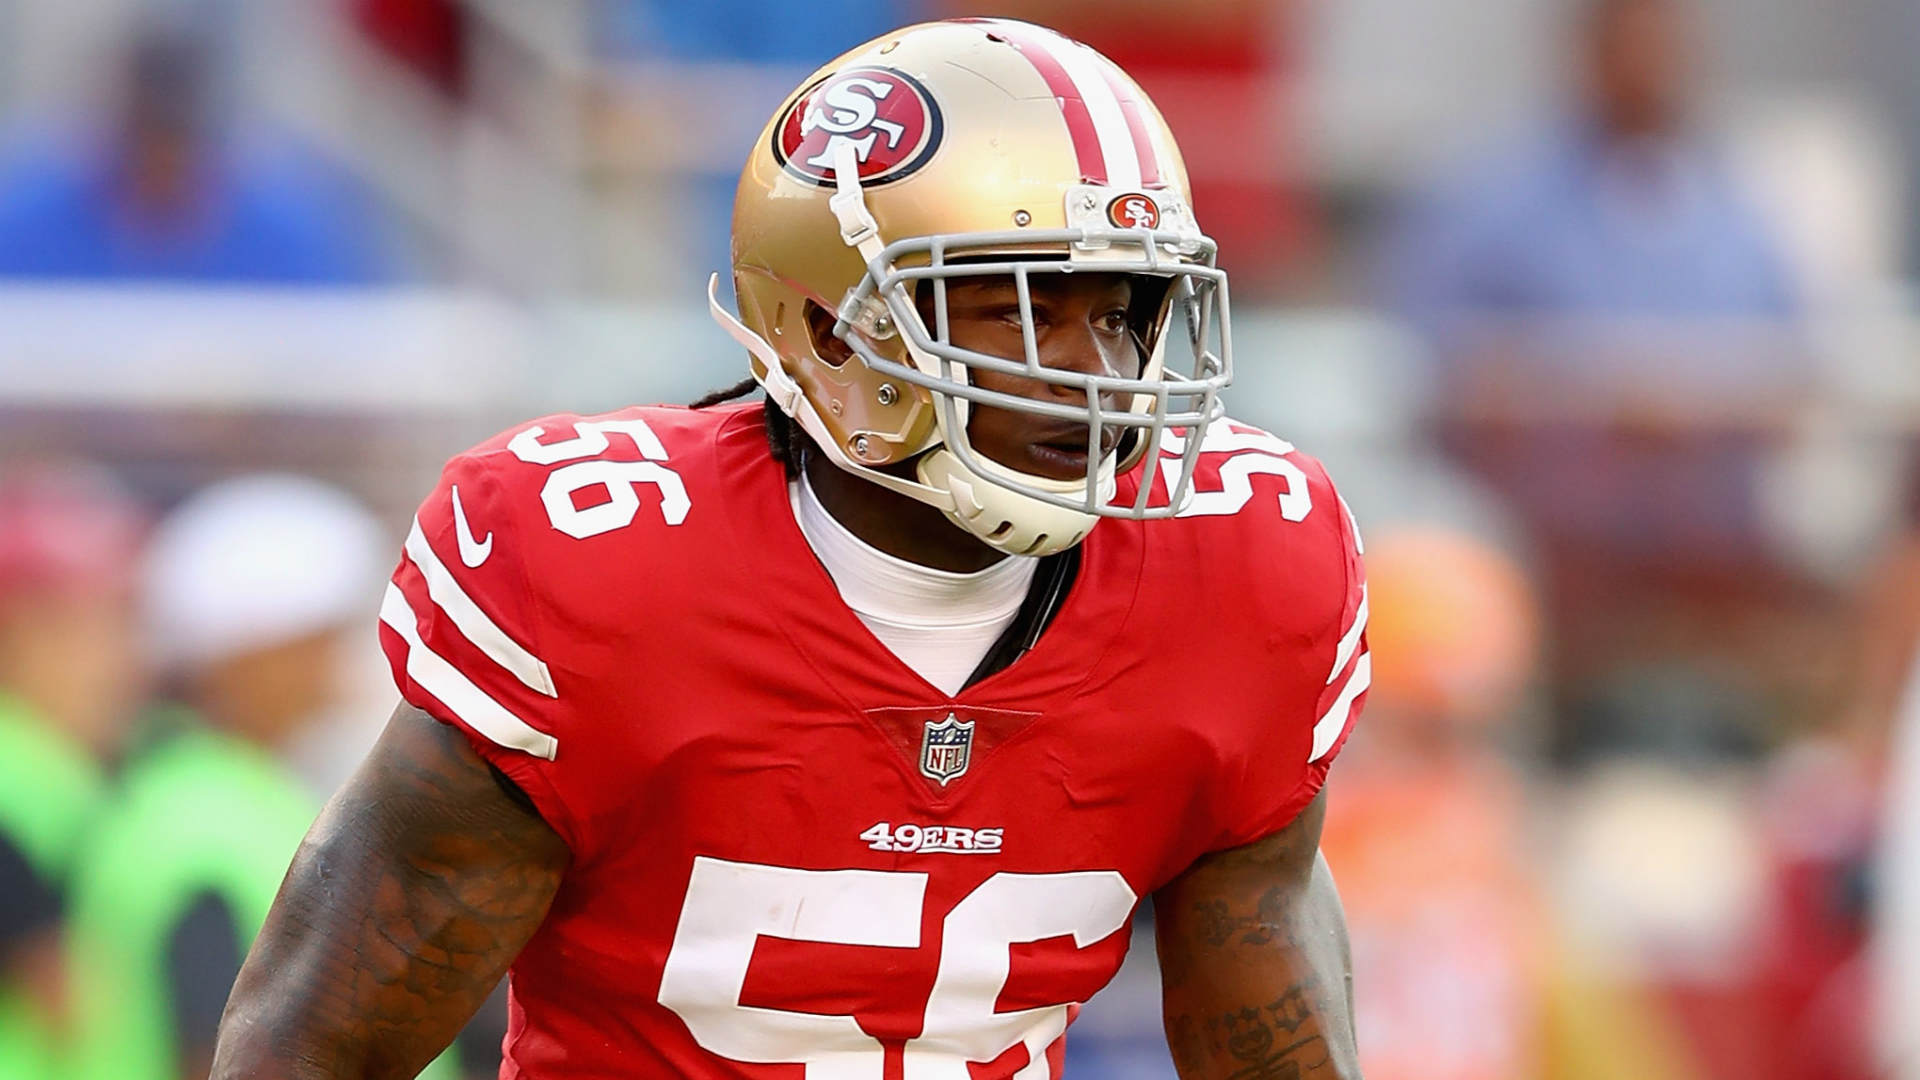 Reuben Foster arrested for marijuana possession in Alabama